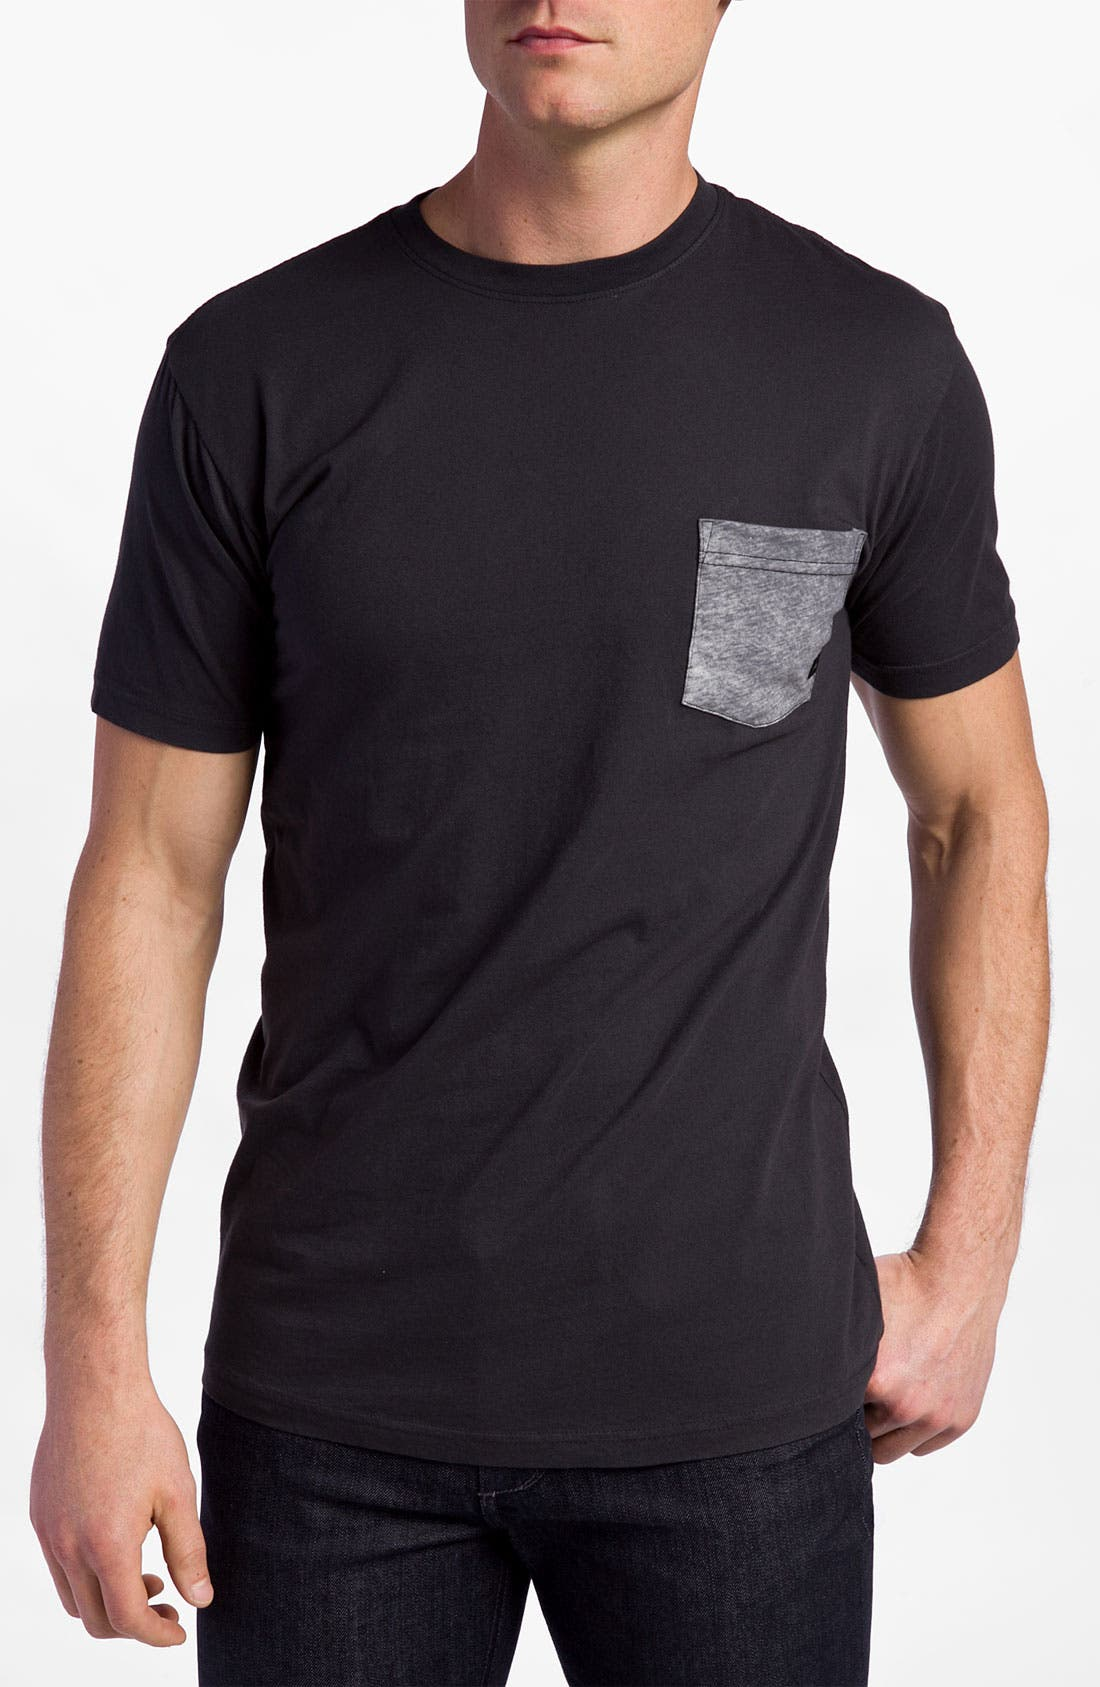 Alternate Image 1 Selected - Quiksilver 'Left Behind'  T-Shirt